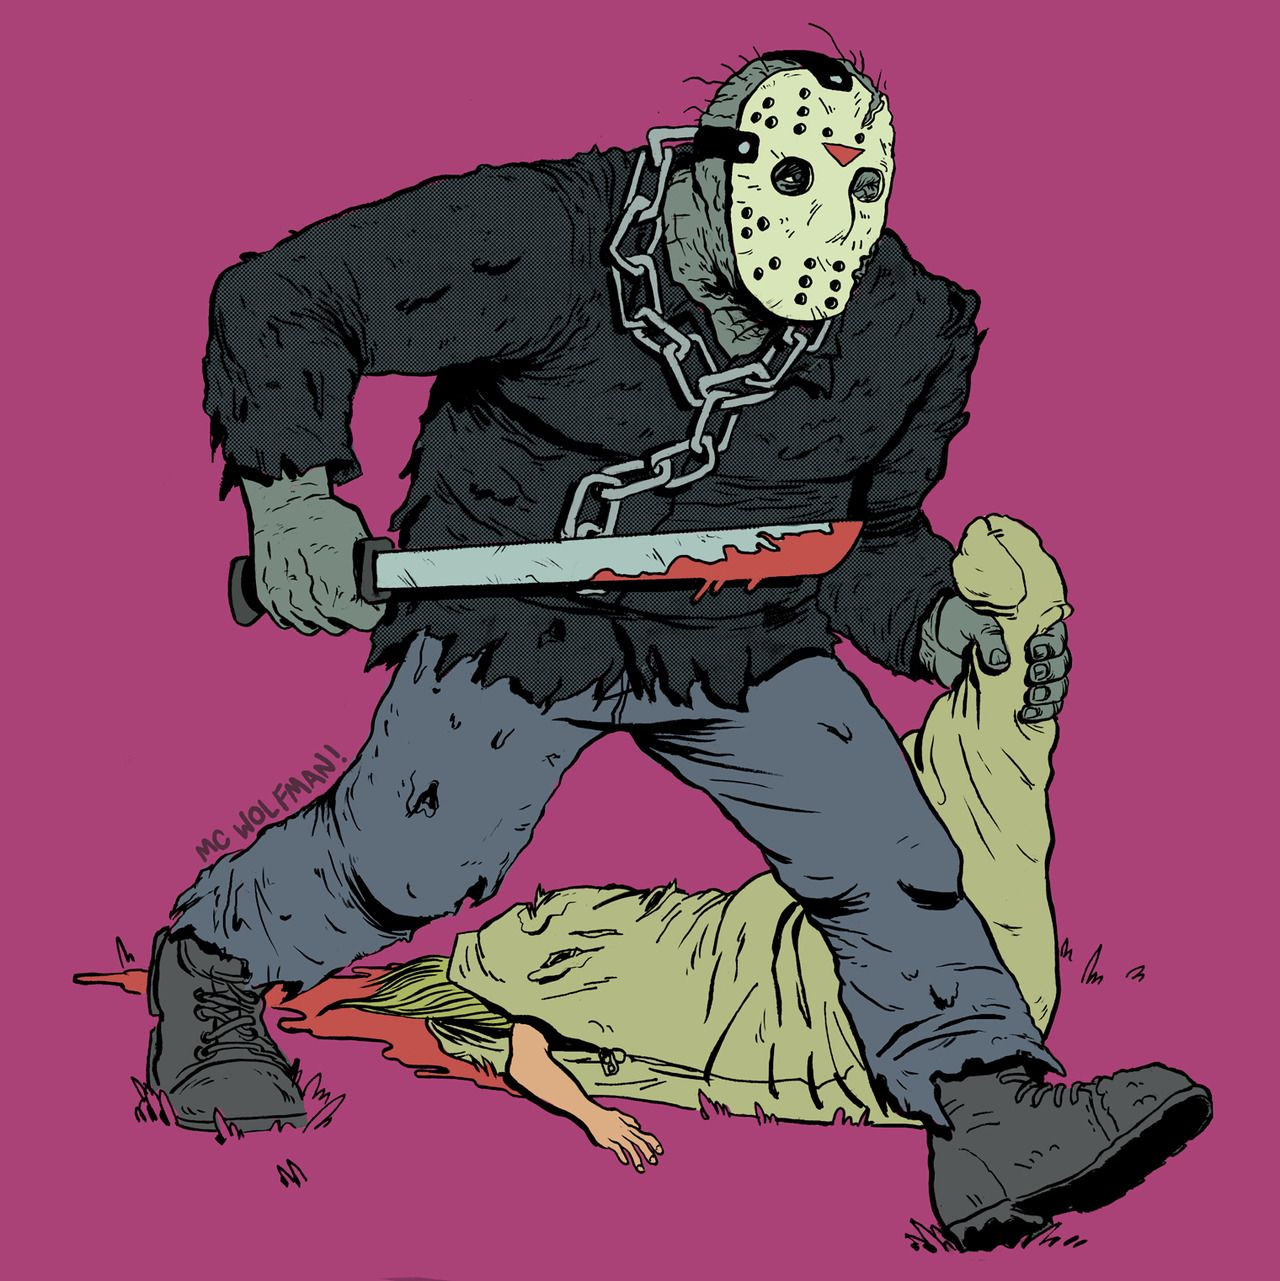 Pin by Kat Voorhees on Jason Voorhees 2 Friday the 13th